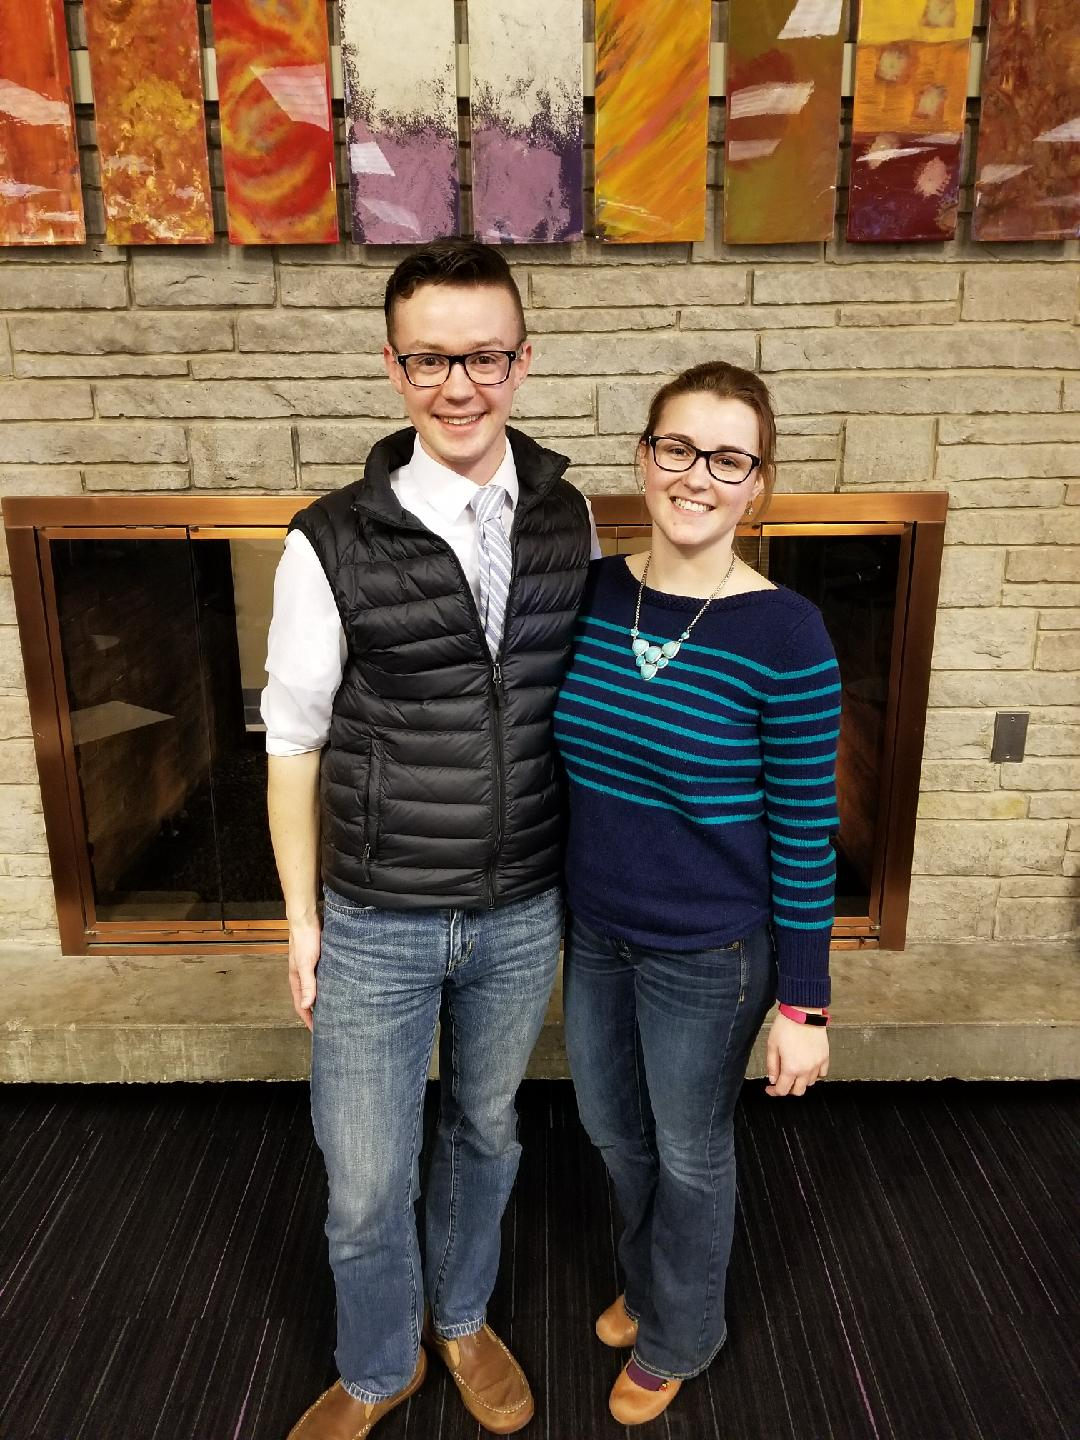 Current student body president Tom Kind, left, with his vice-presidential candidate Zoe Miller.